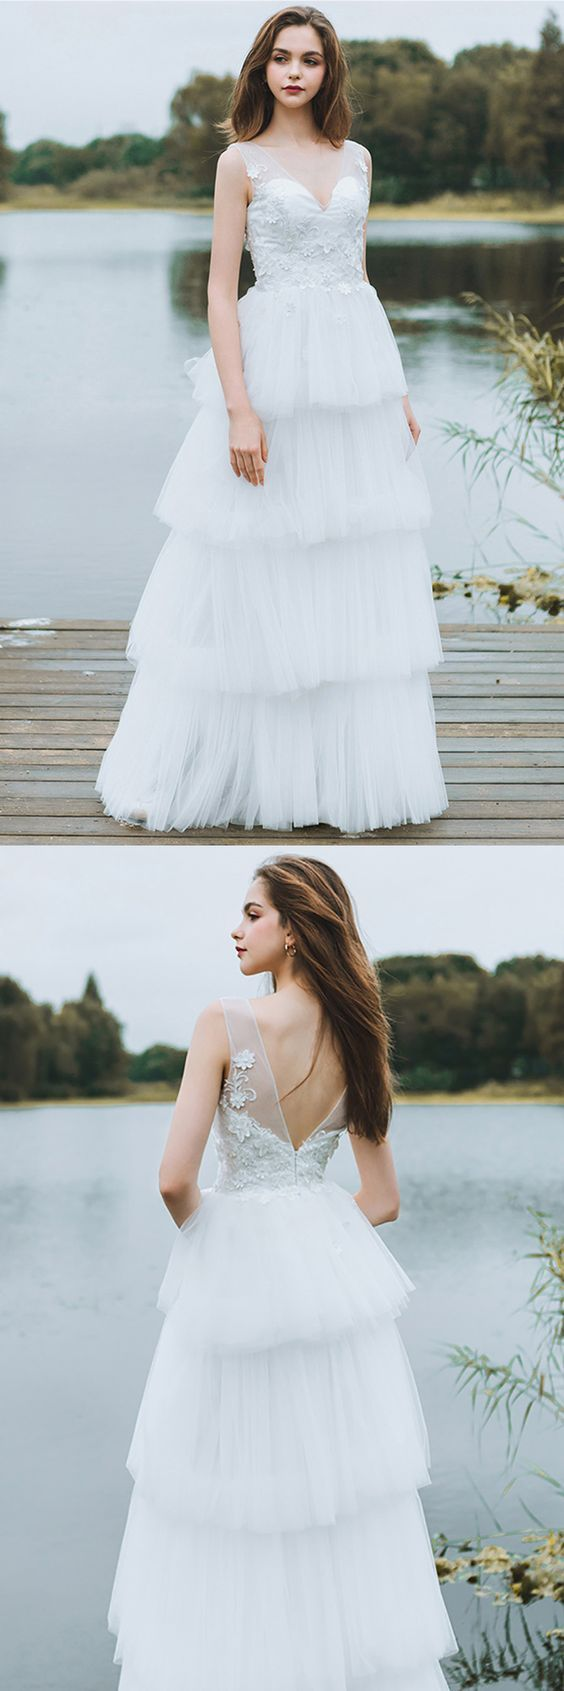 Unique tiered tulle low back wedding dress beach weddings long dress